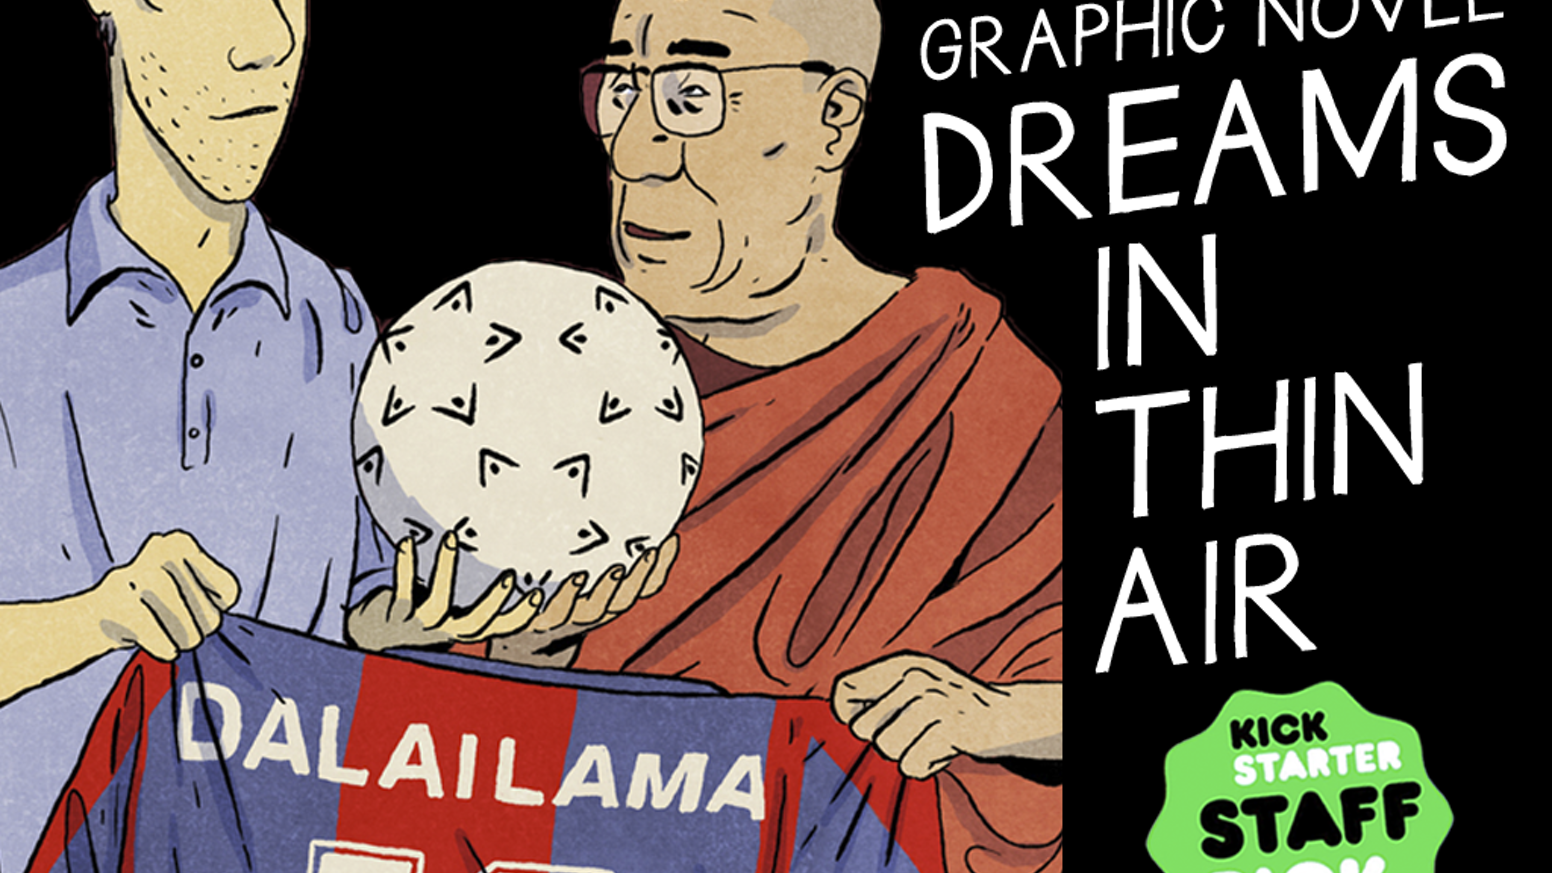 A Graphic Novel based on a true story about a young man's dream to become coach for Tibet's first football team.